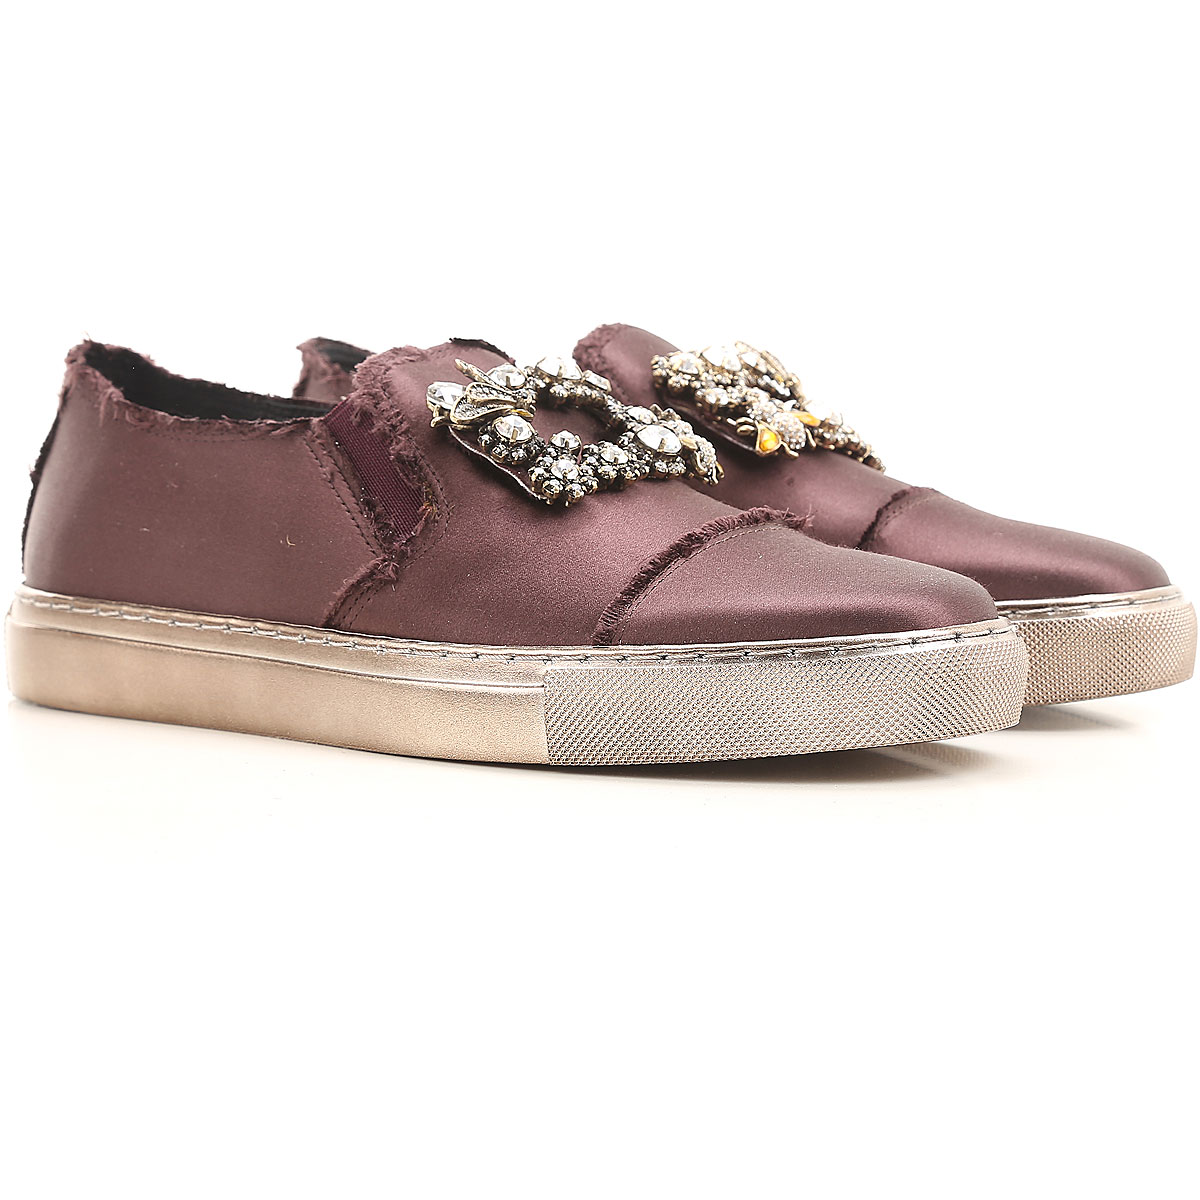 Image of Ras Sneakers for Women On Sale in Outlet, Purple Bordeaux, satin, 2017, 10 5 9